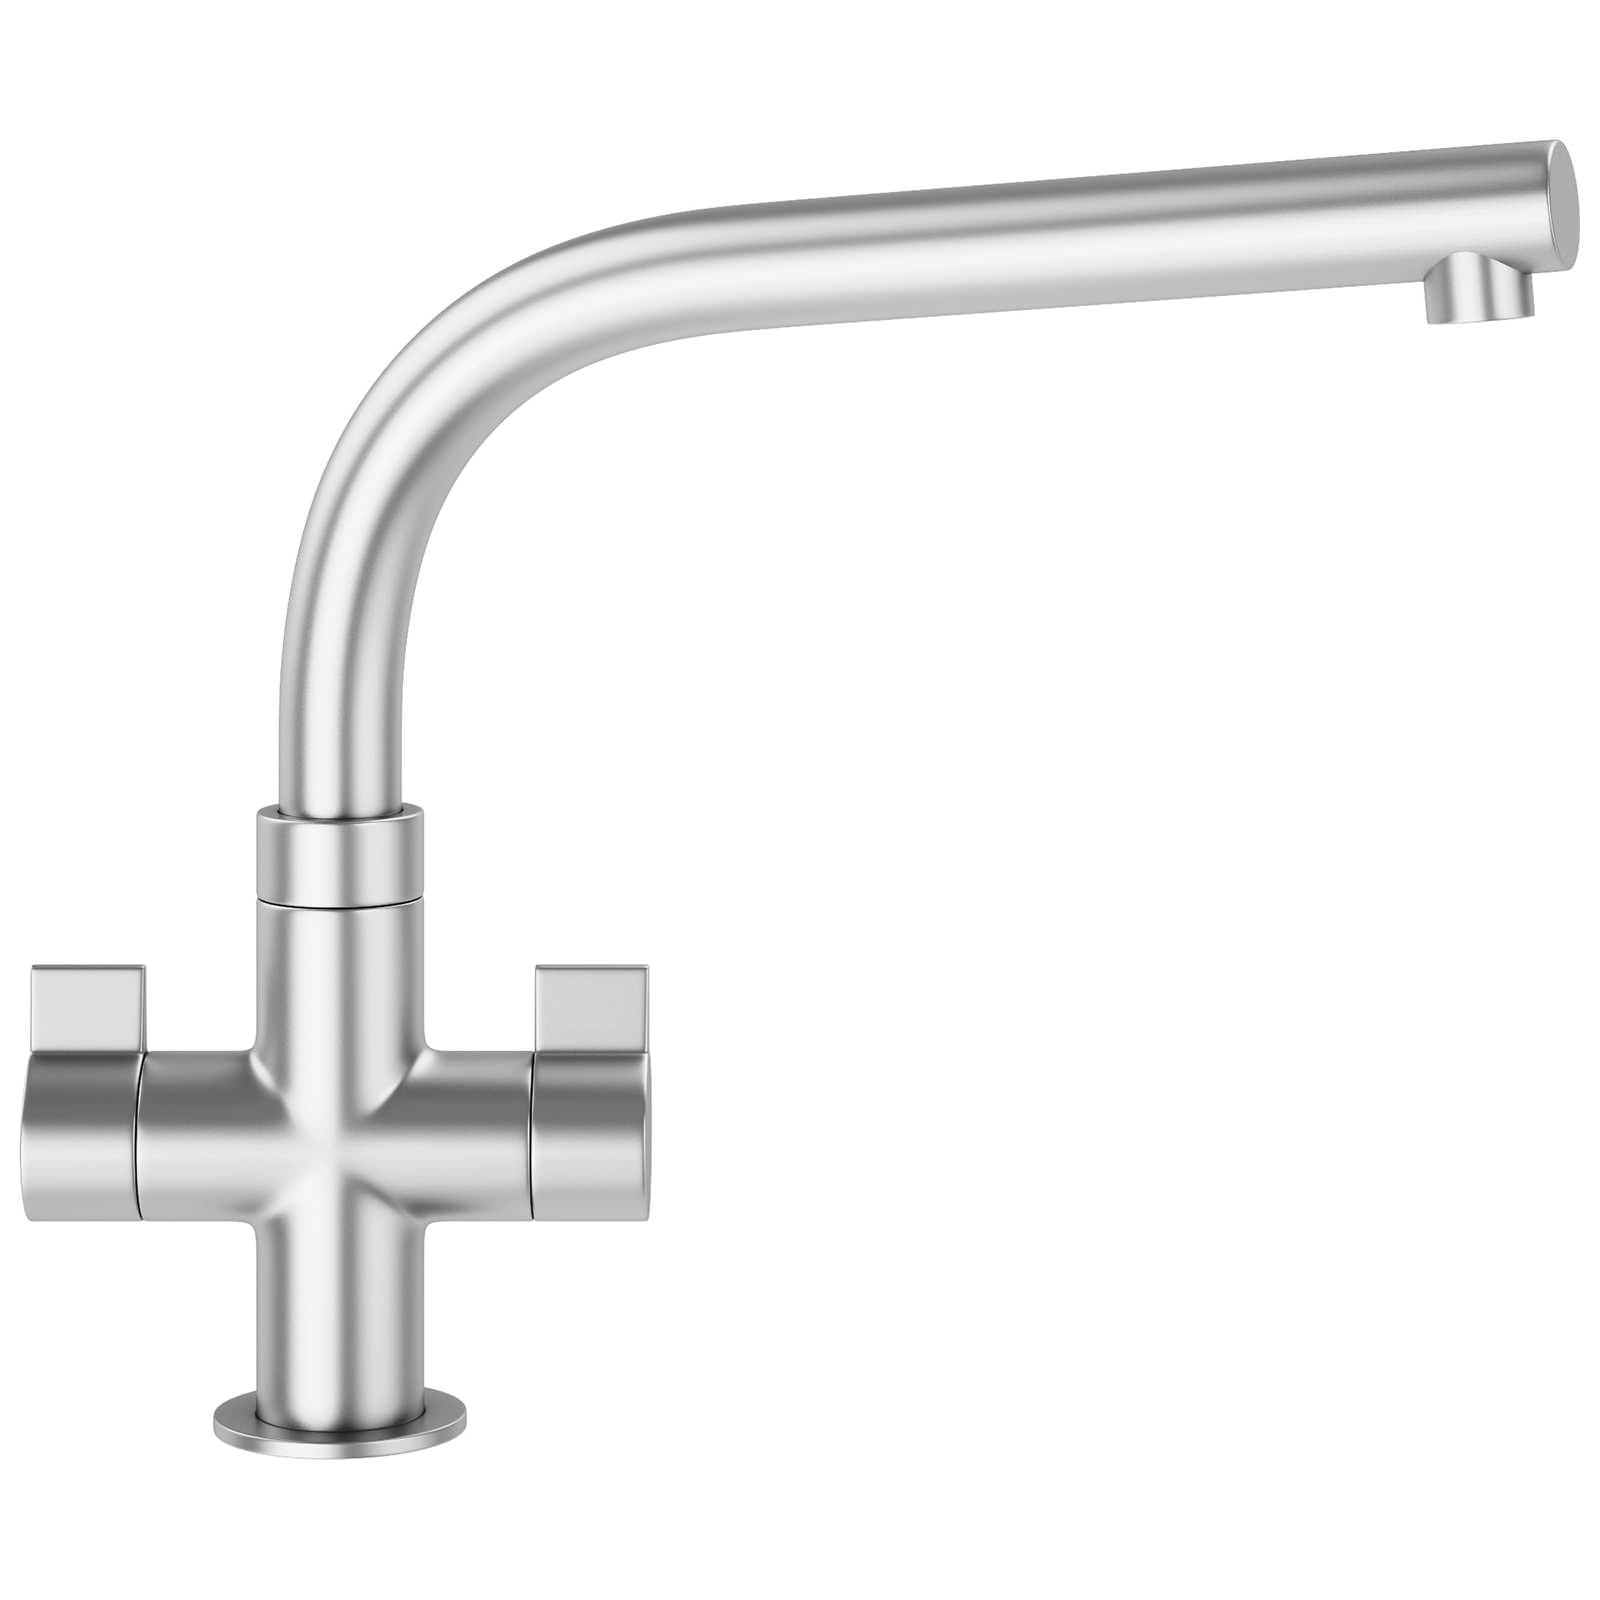 Franke Kitchen Mixer : ... taps kitchen mixer taps franke sion kitchen sink mixer tap silksteel